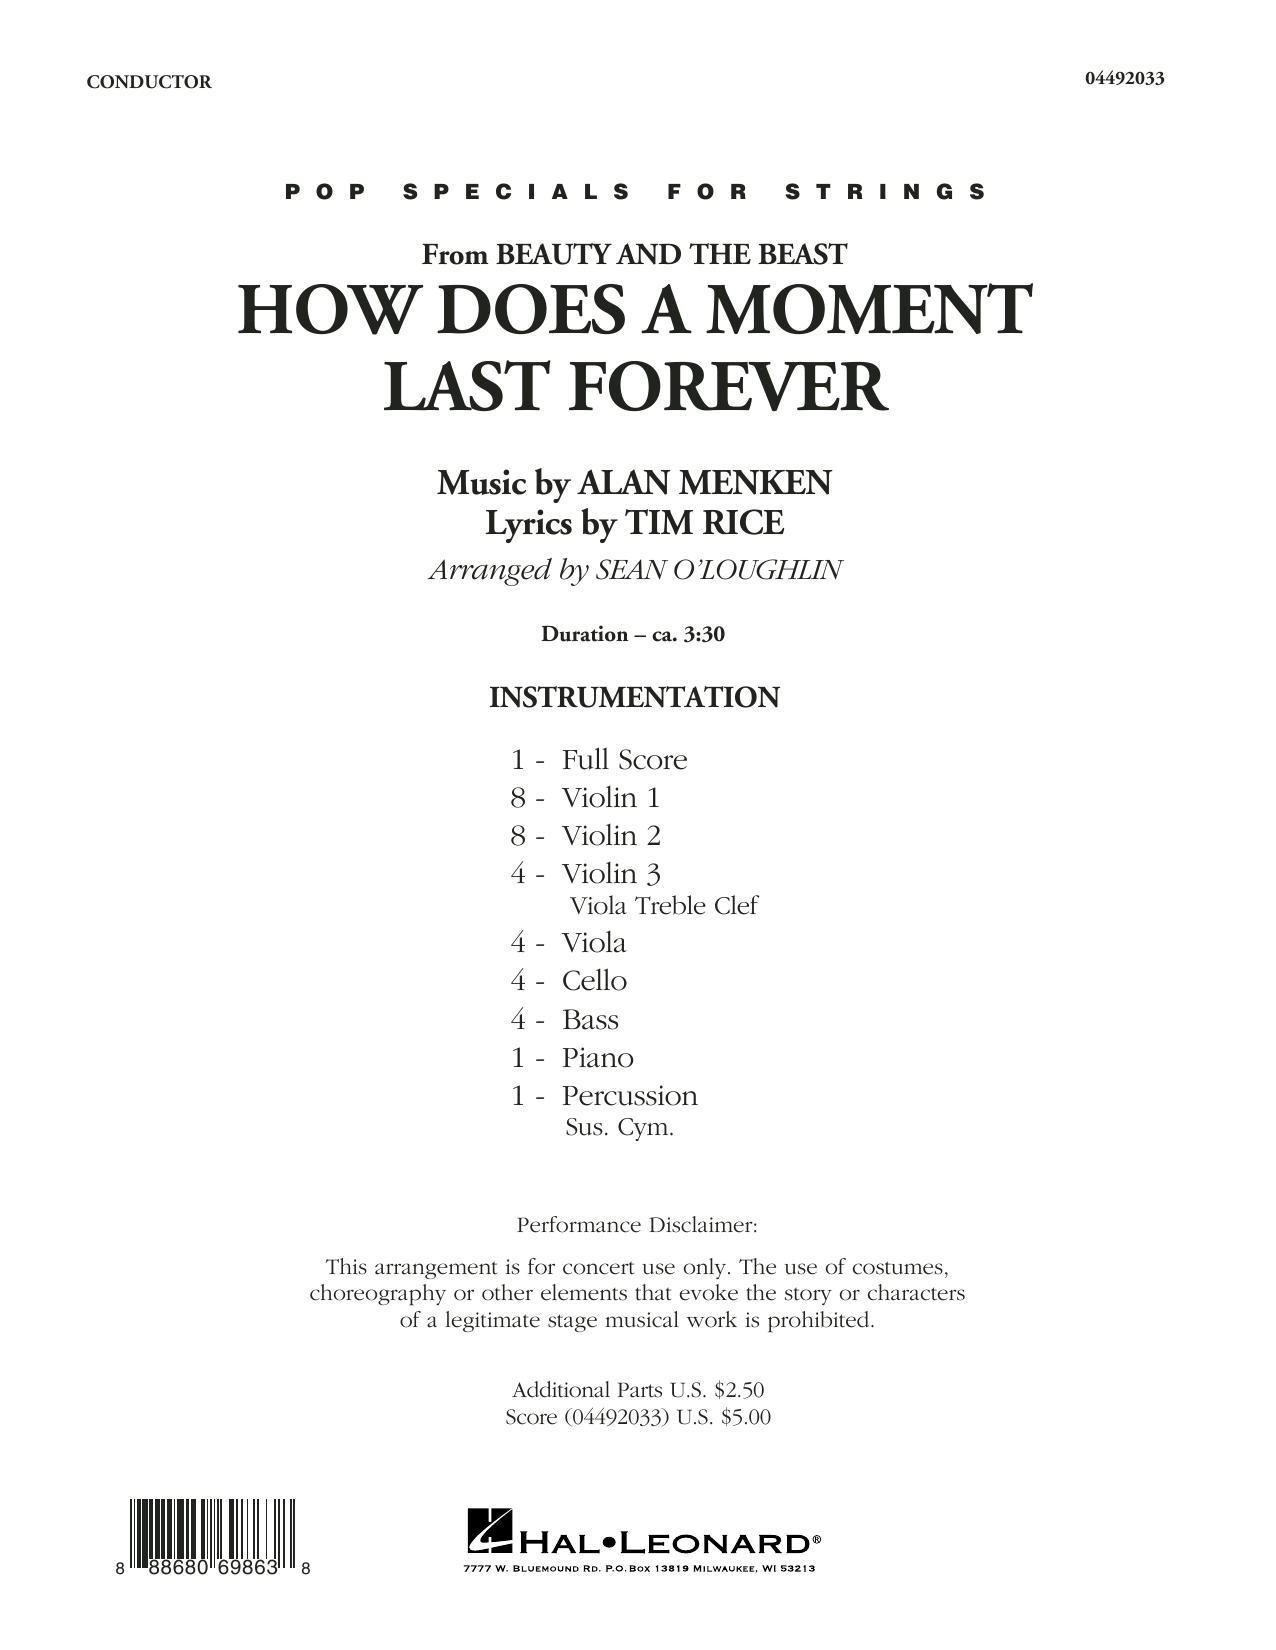 How Does a Moment Last Forever (from Beauty and the Beast) (COMPLETE) sheet music for orchestra by Alan Menken and Tim Rice. Score Image Preview.